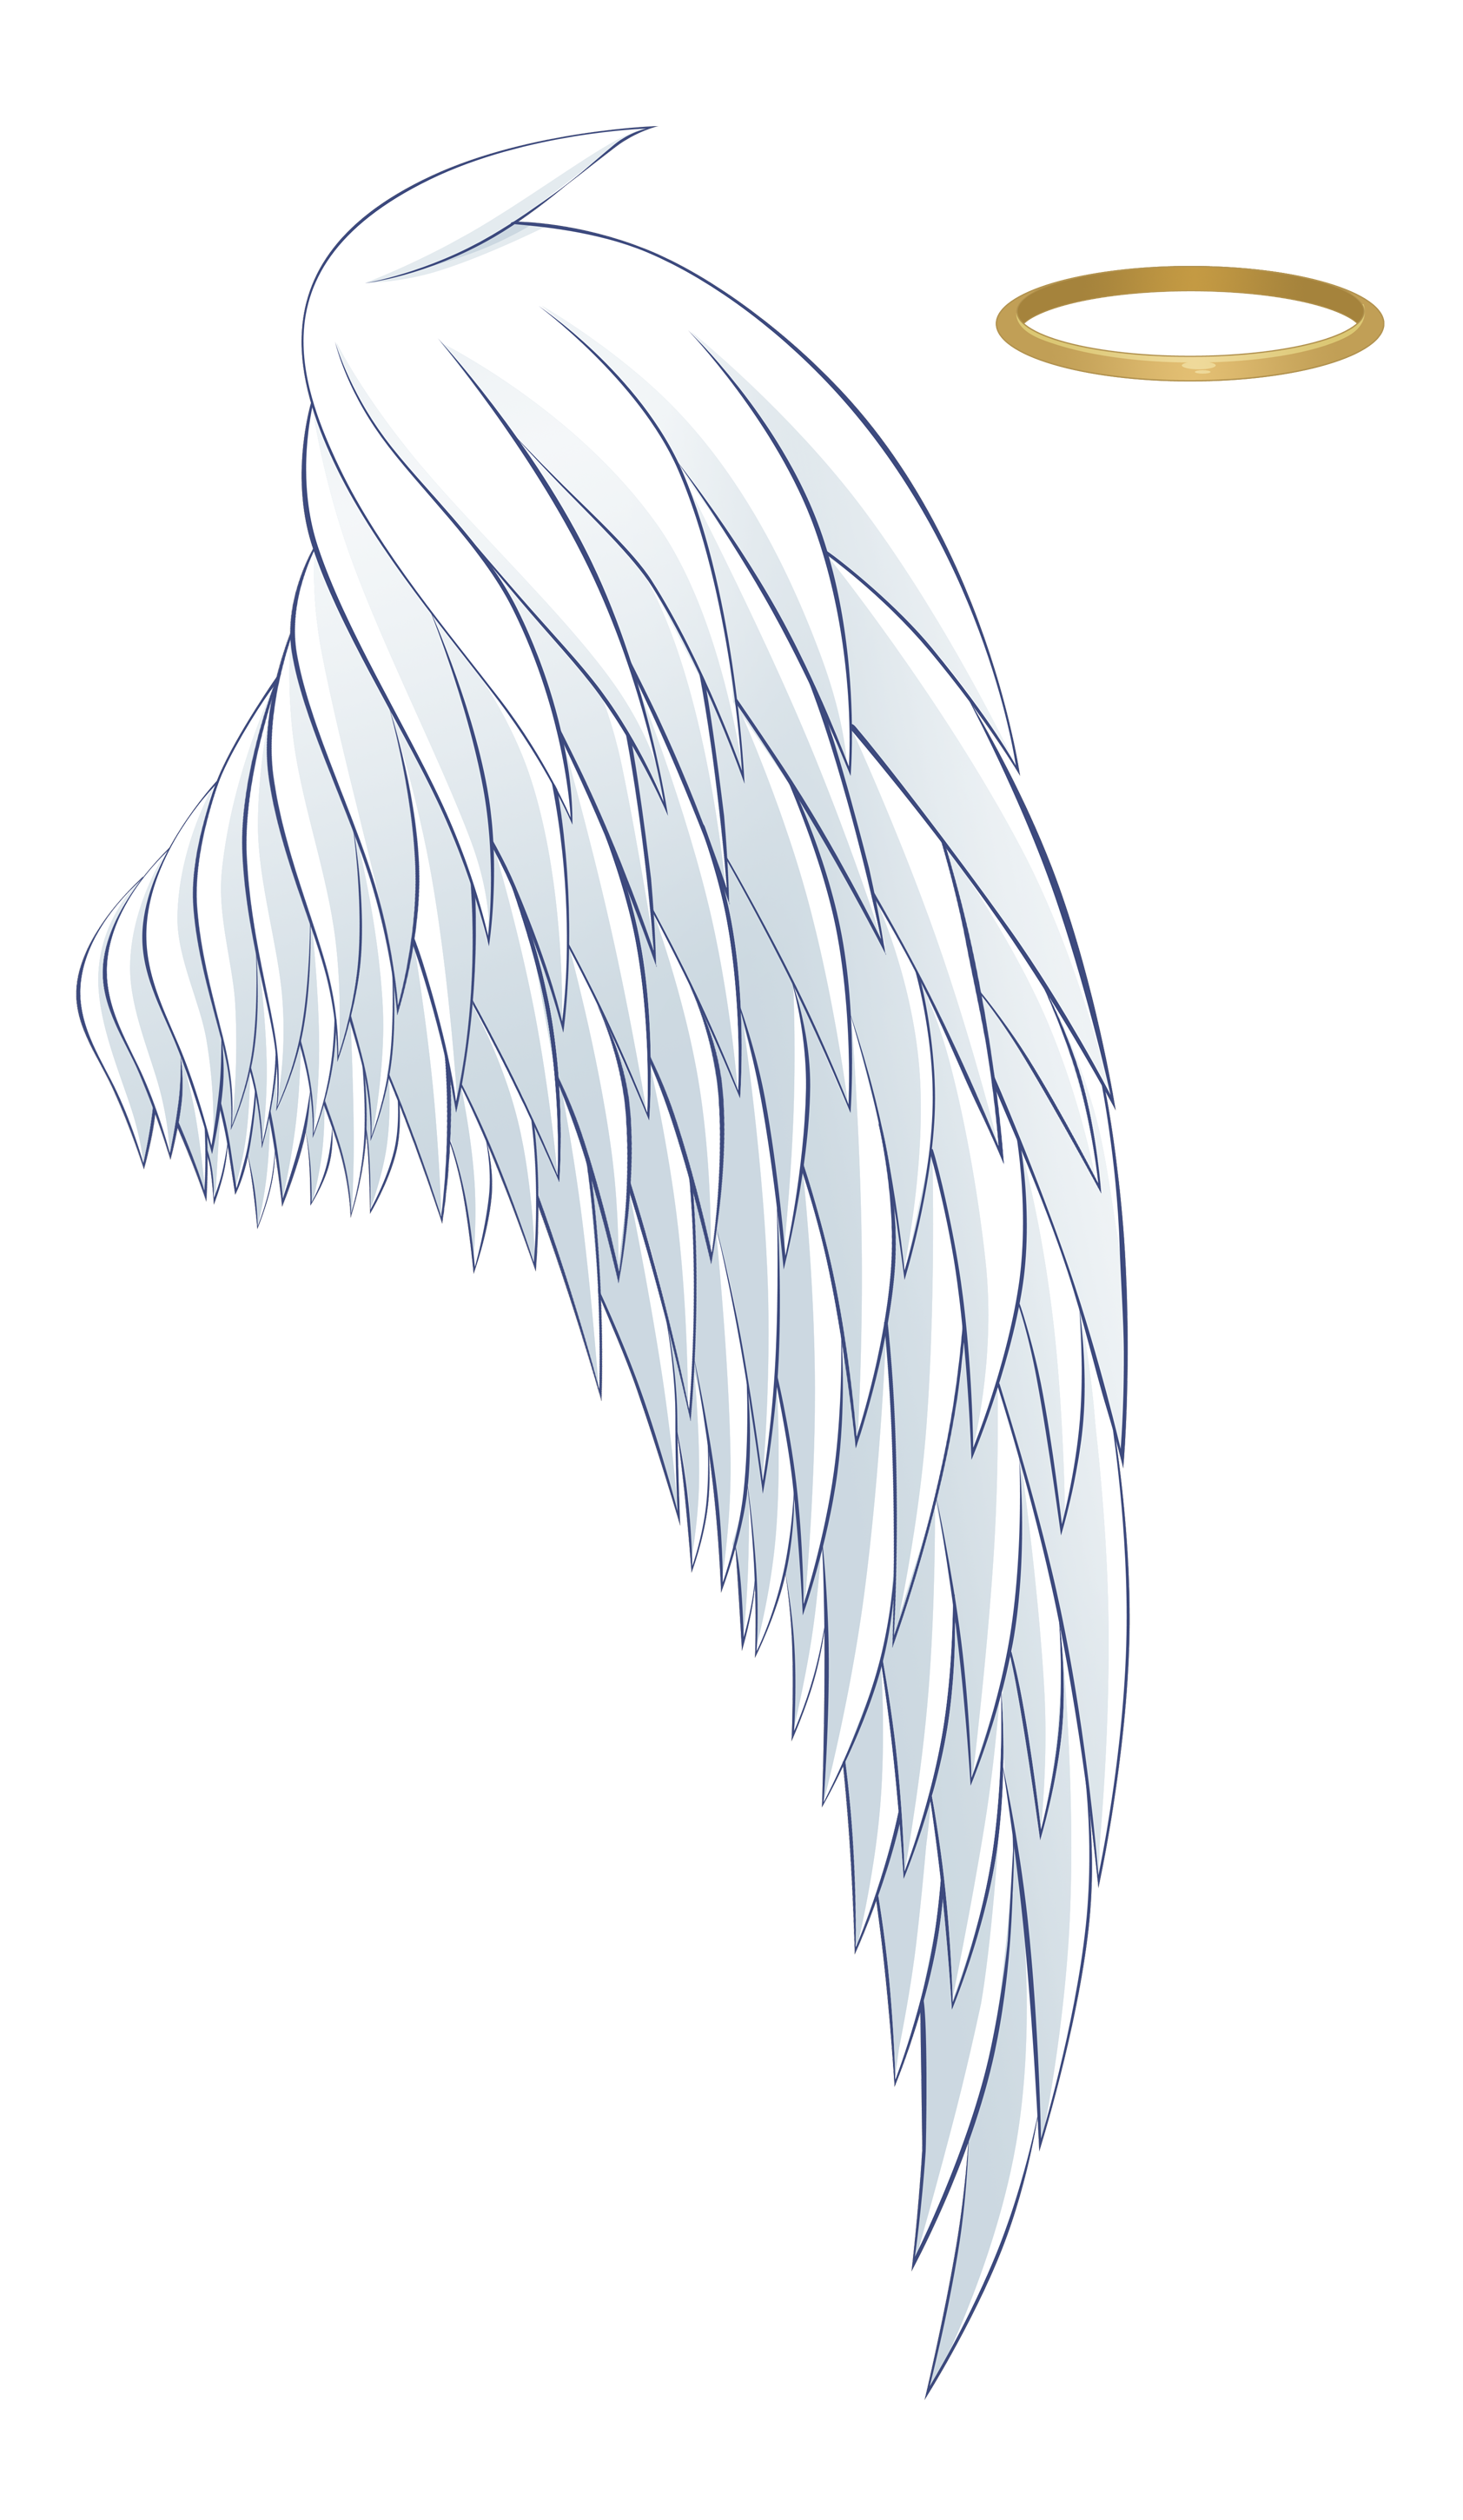 And Angel Wing Aureola White Wings Halo PNG Image